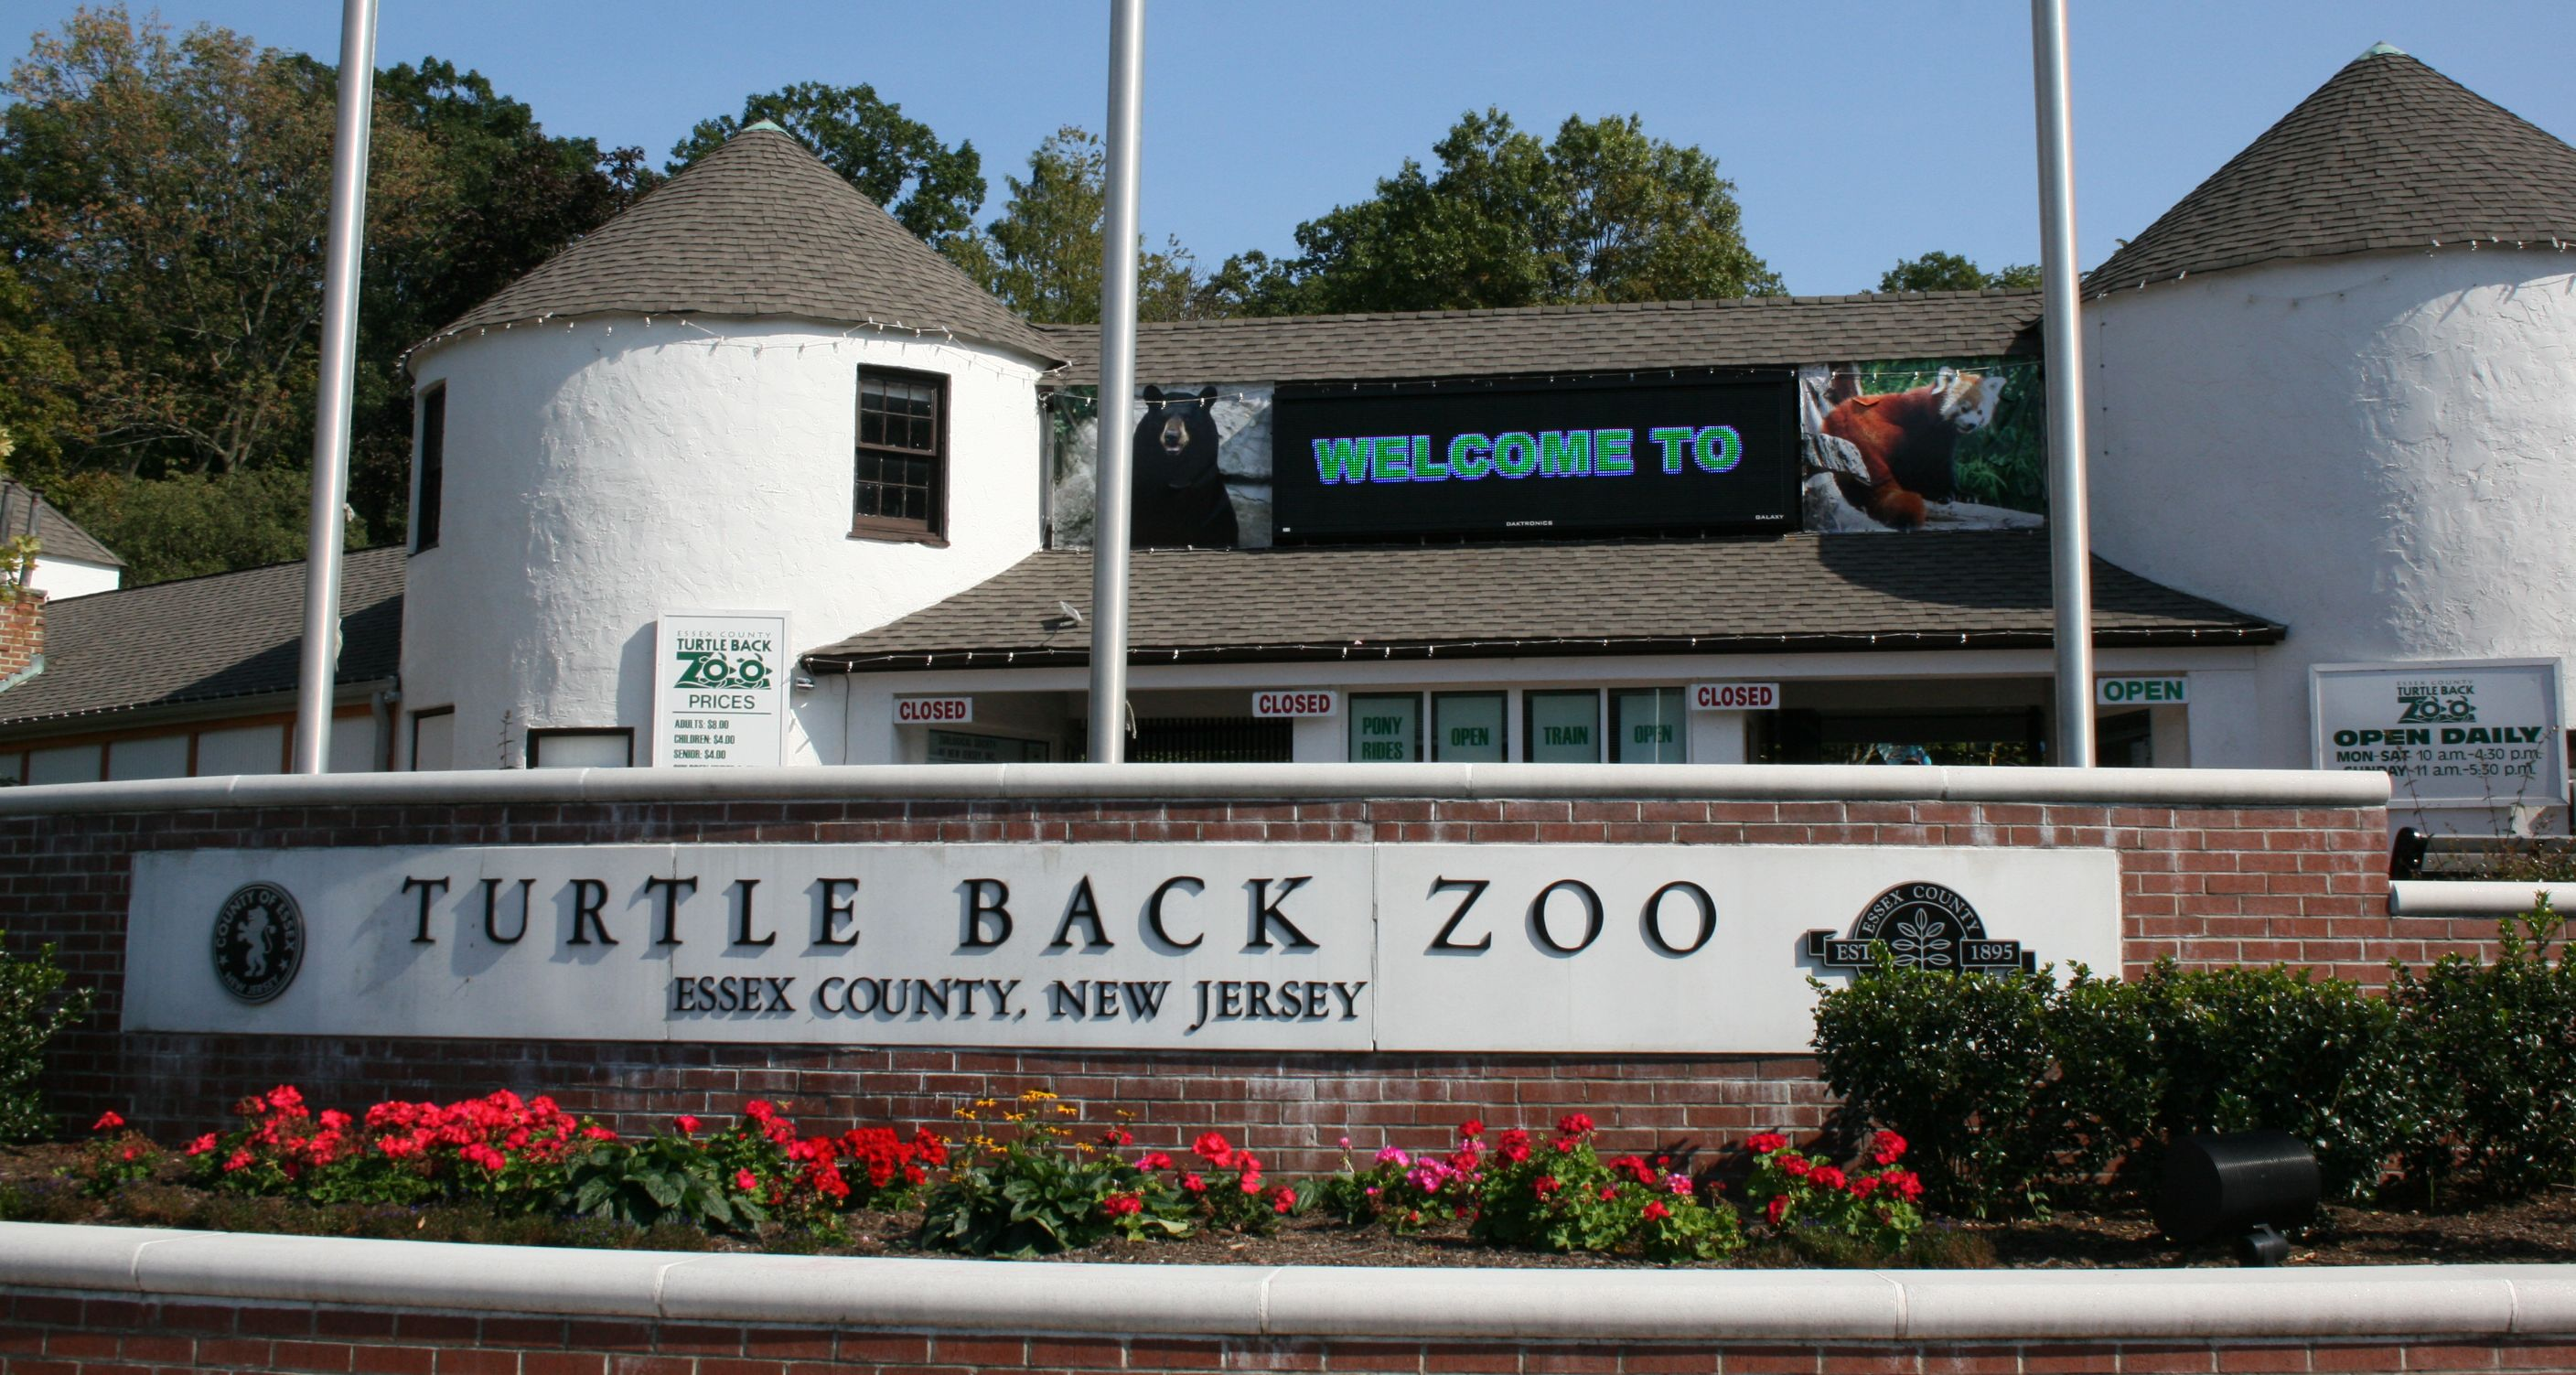 West Orange New Jersey Turtle Back Zoo entrance compressed